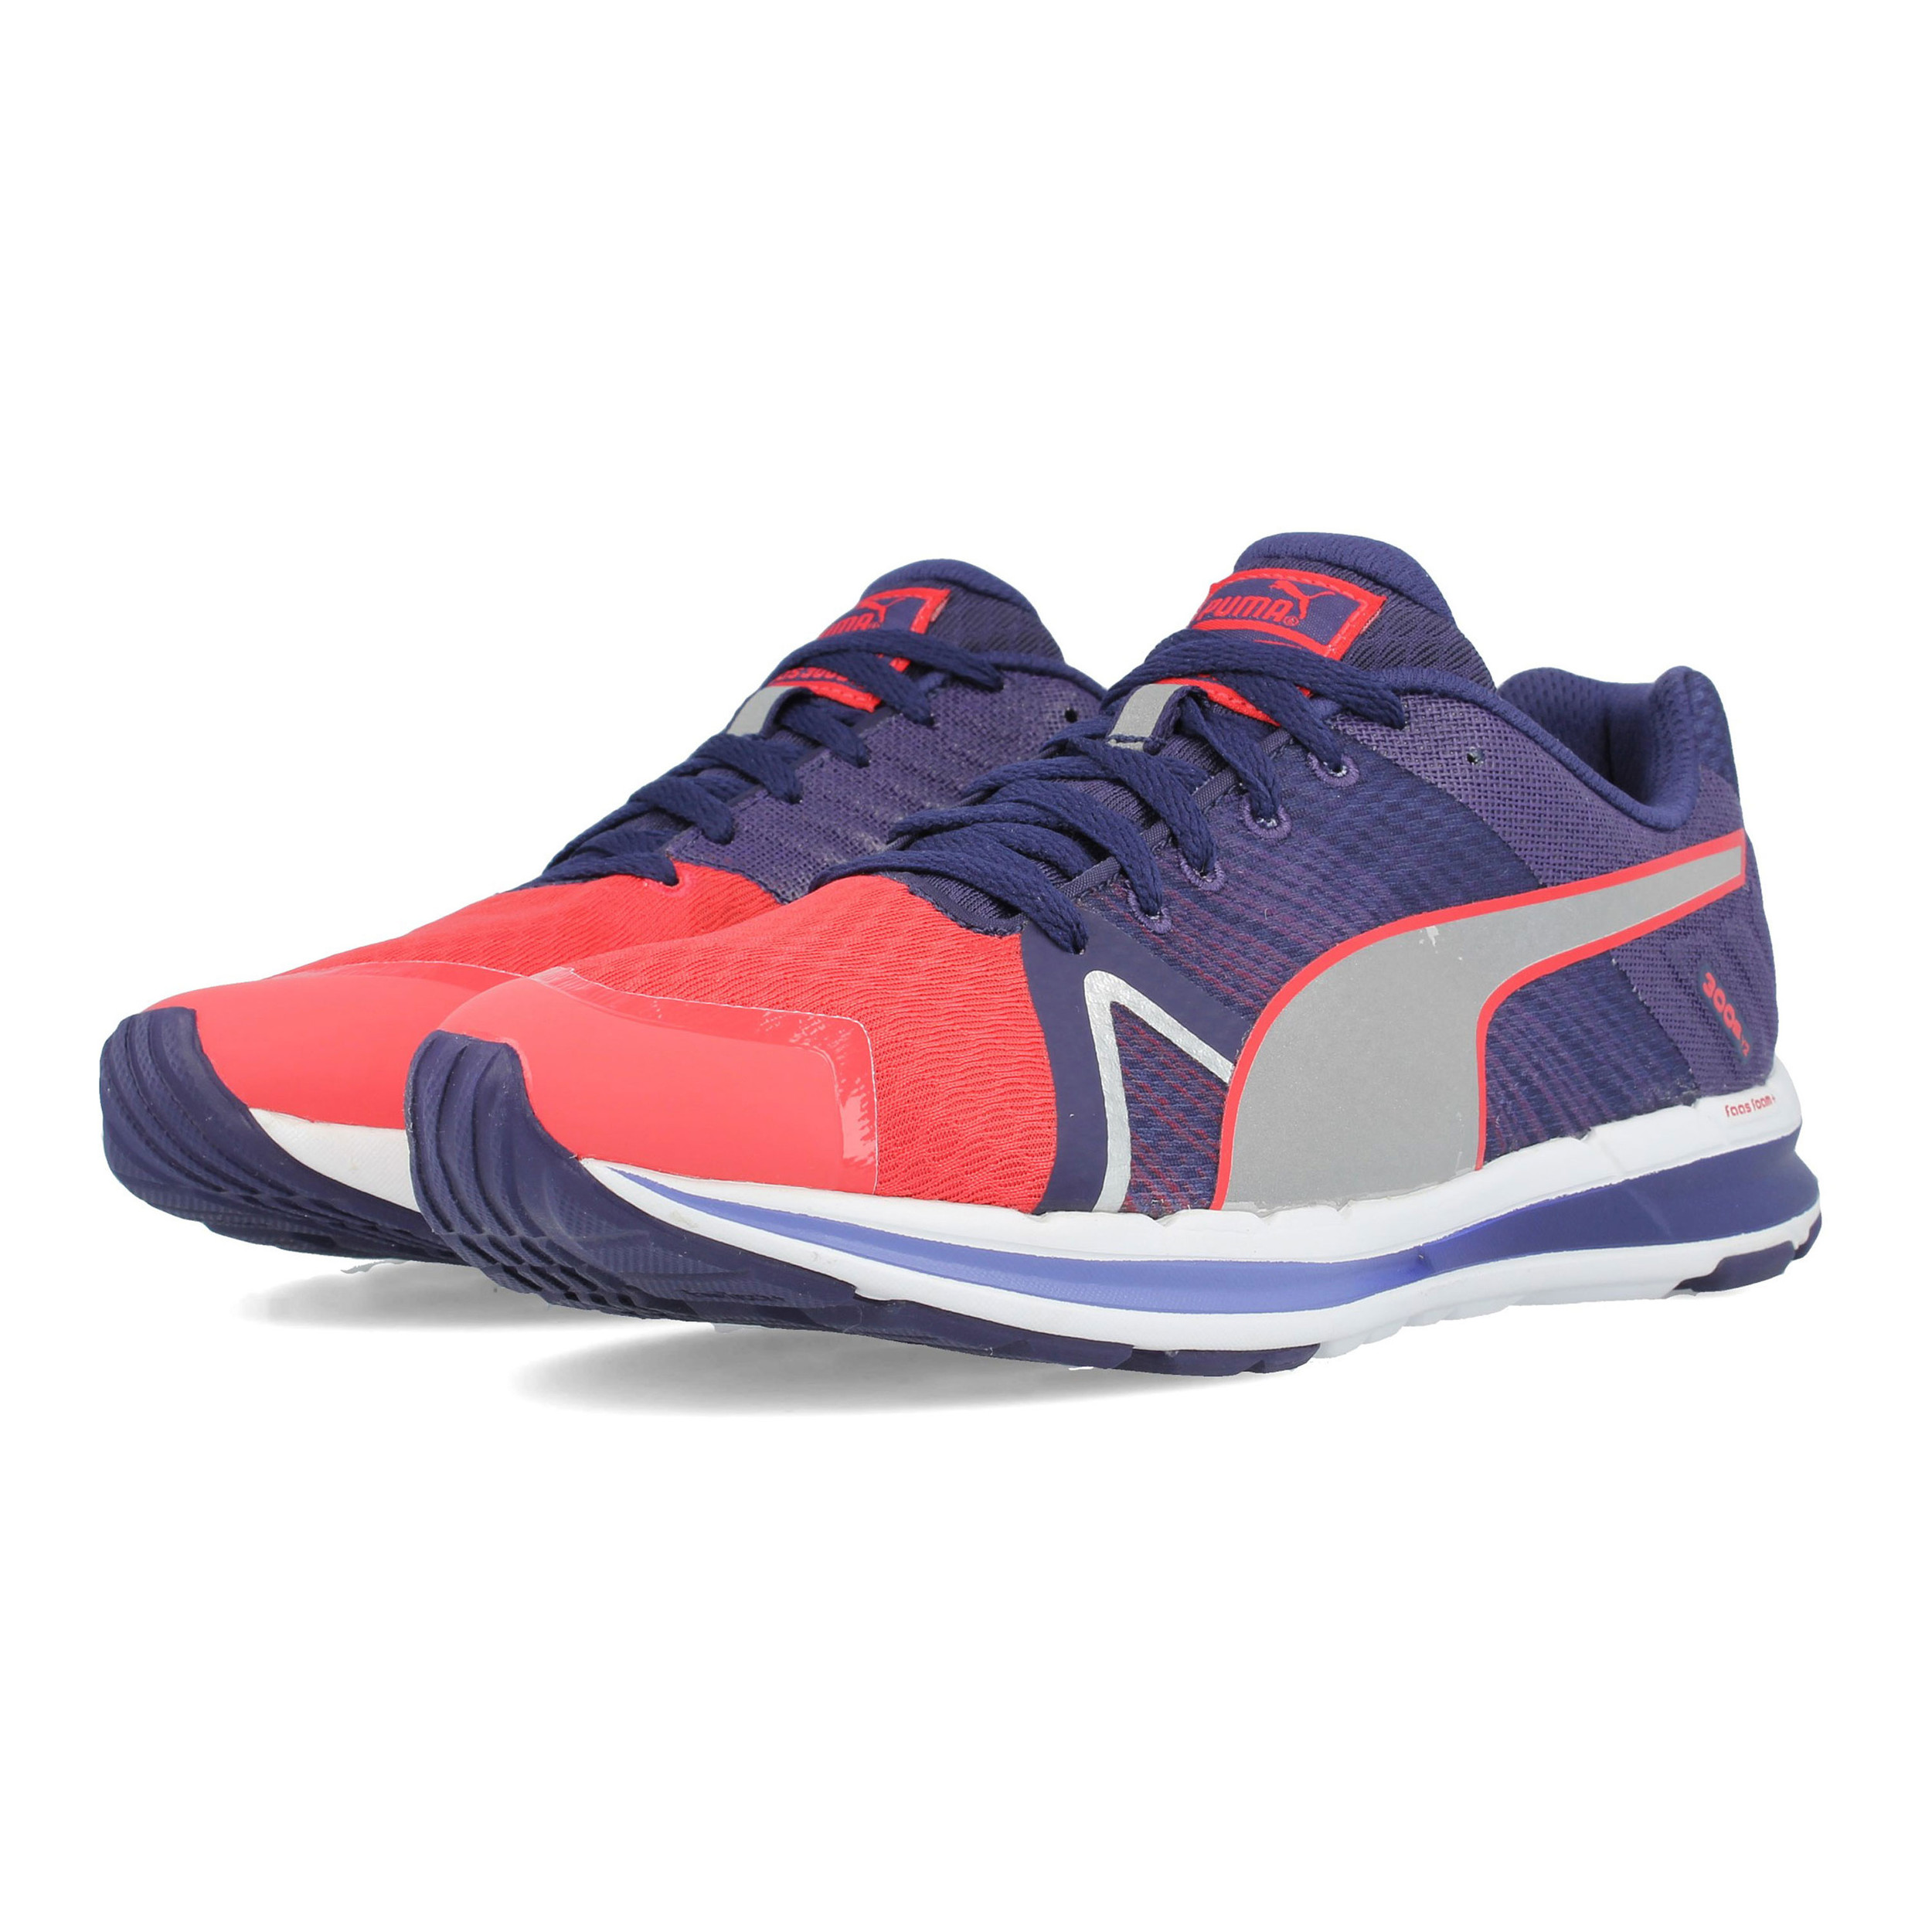 Details about Puma Womens Faas 300 S v2 Running Shoes Trainers Sneakers  Pink Purple 3ea08bd39